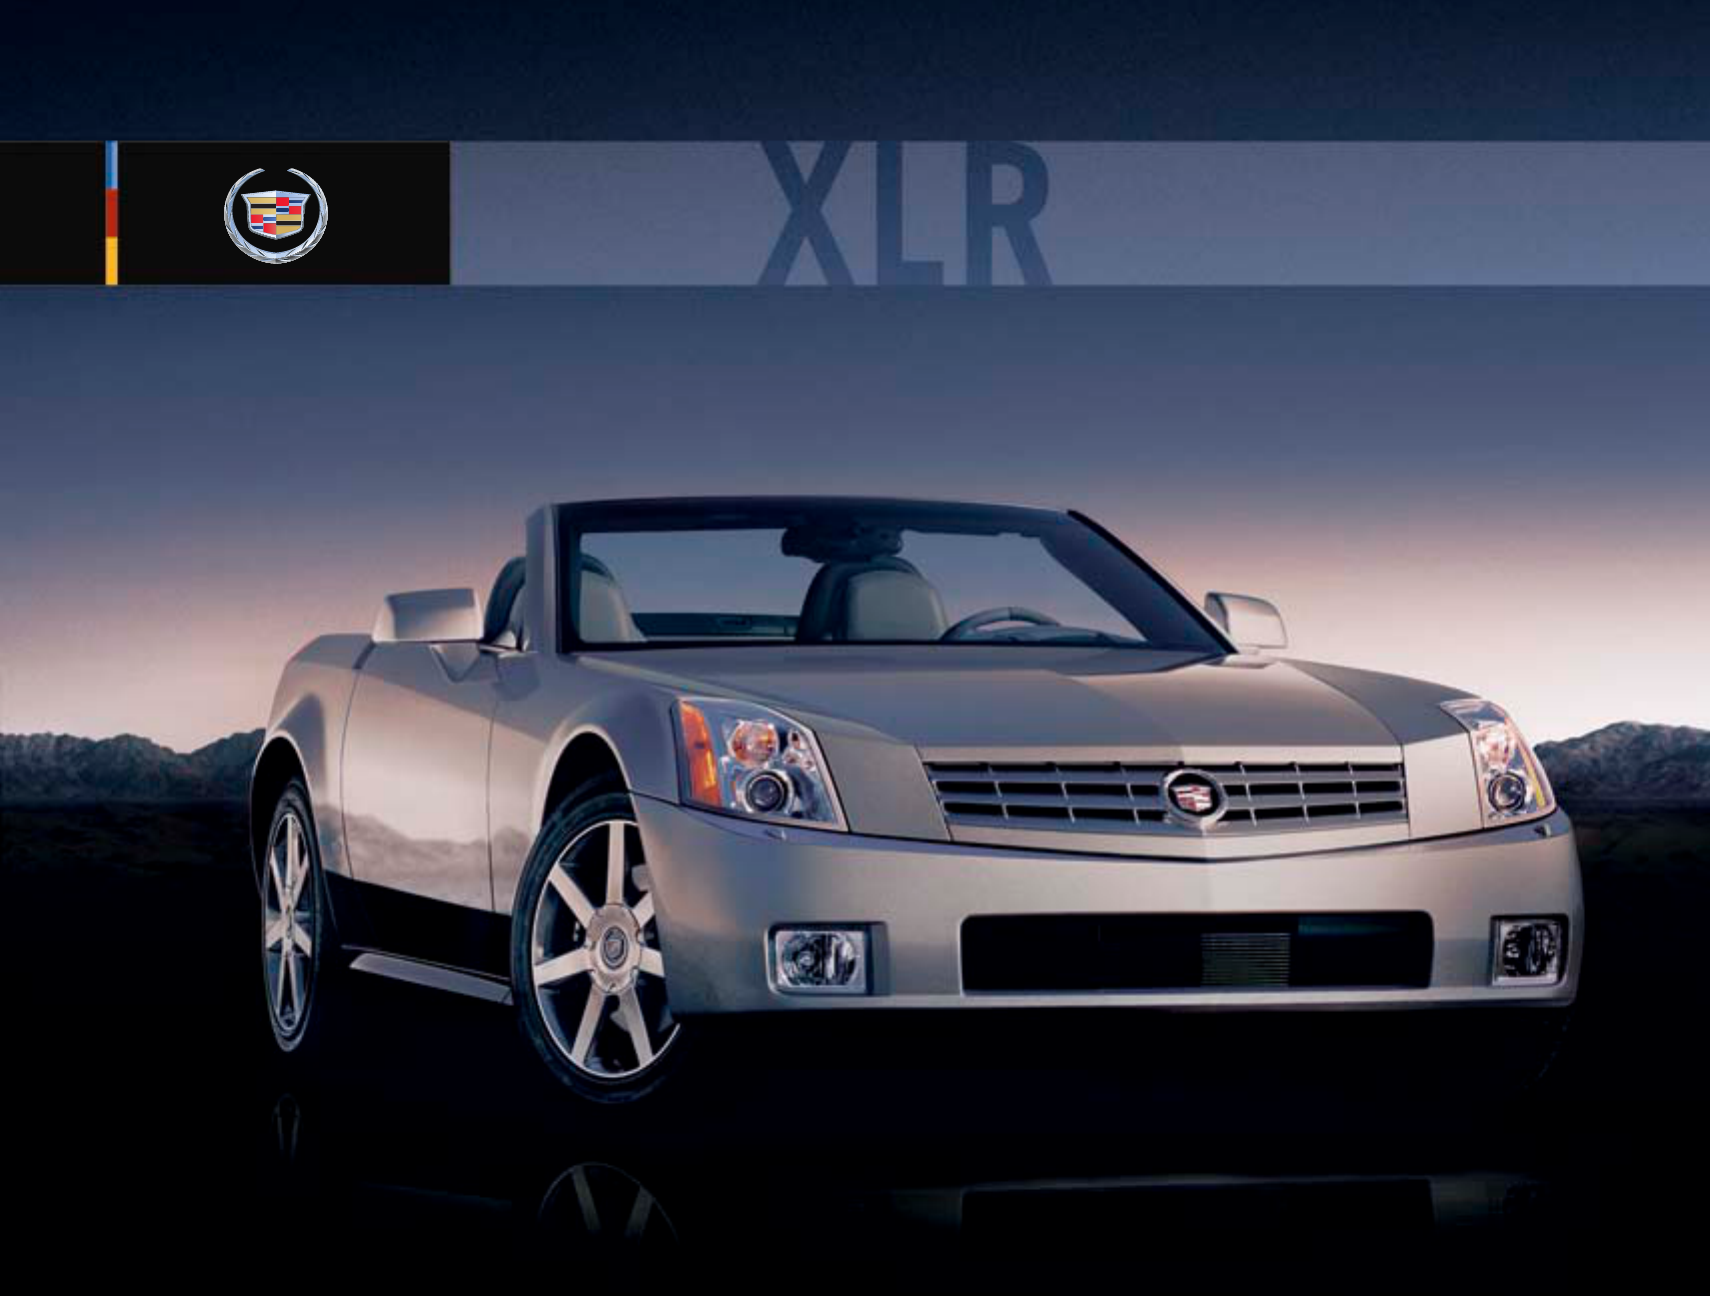 cadillac sports cars news worst xlr